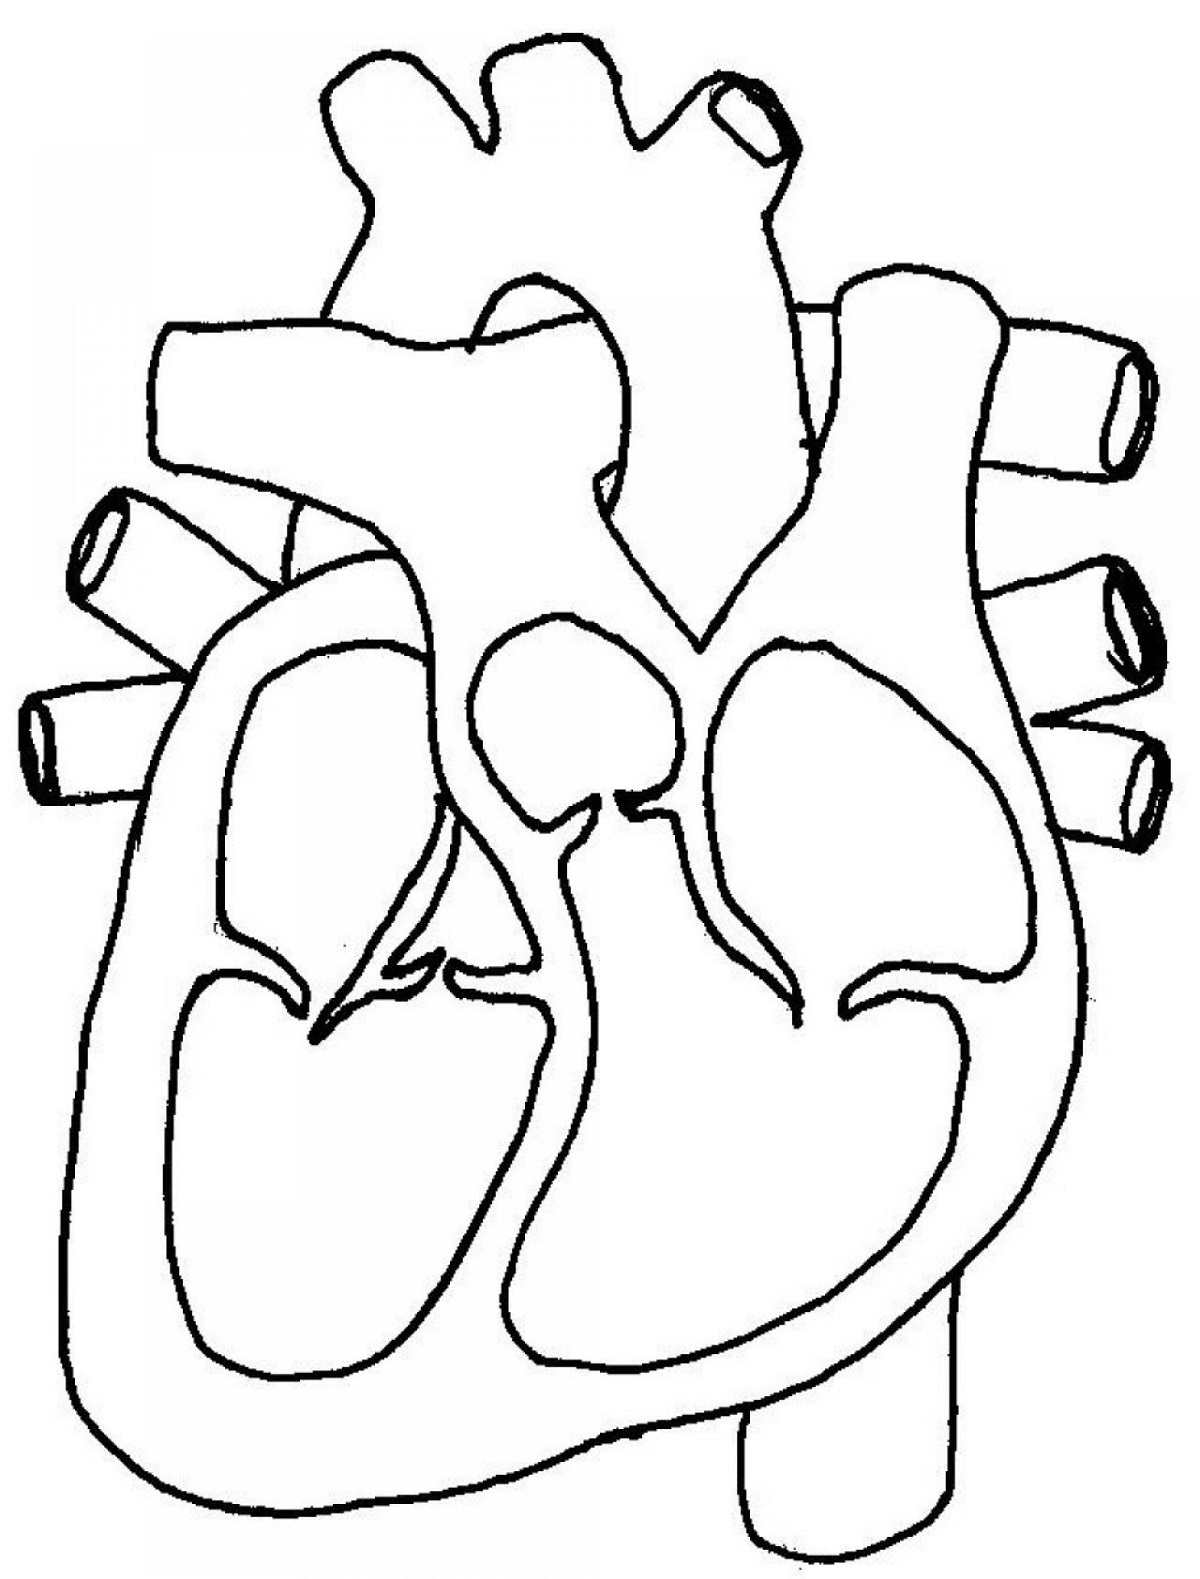 1200x1579 Printable Diagrams Of The Human Heart Diagram Site